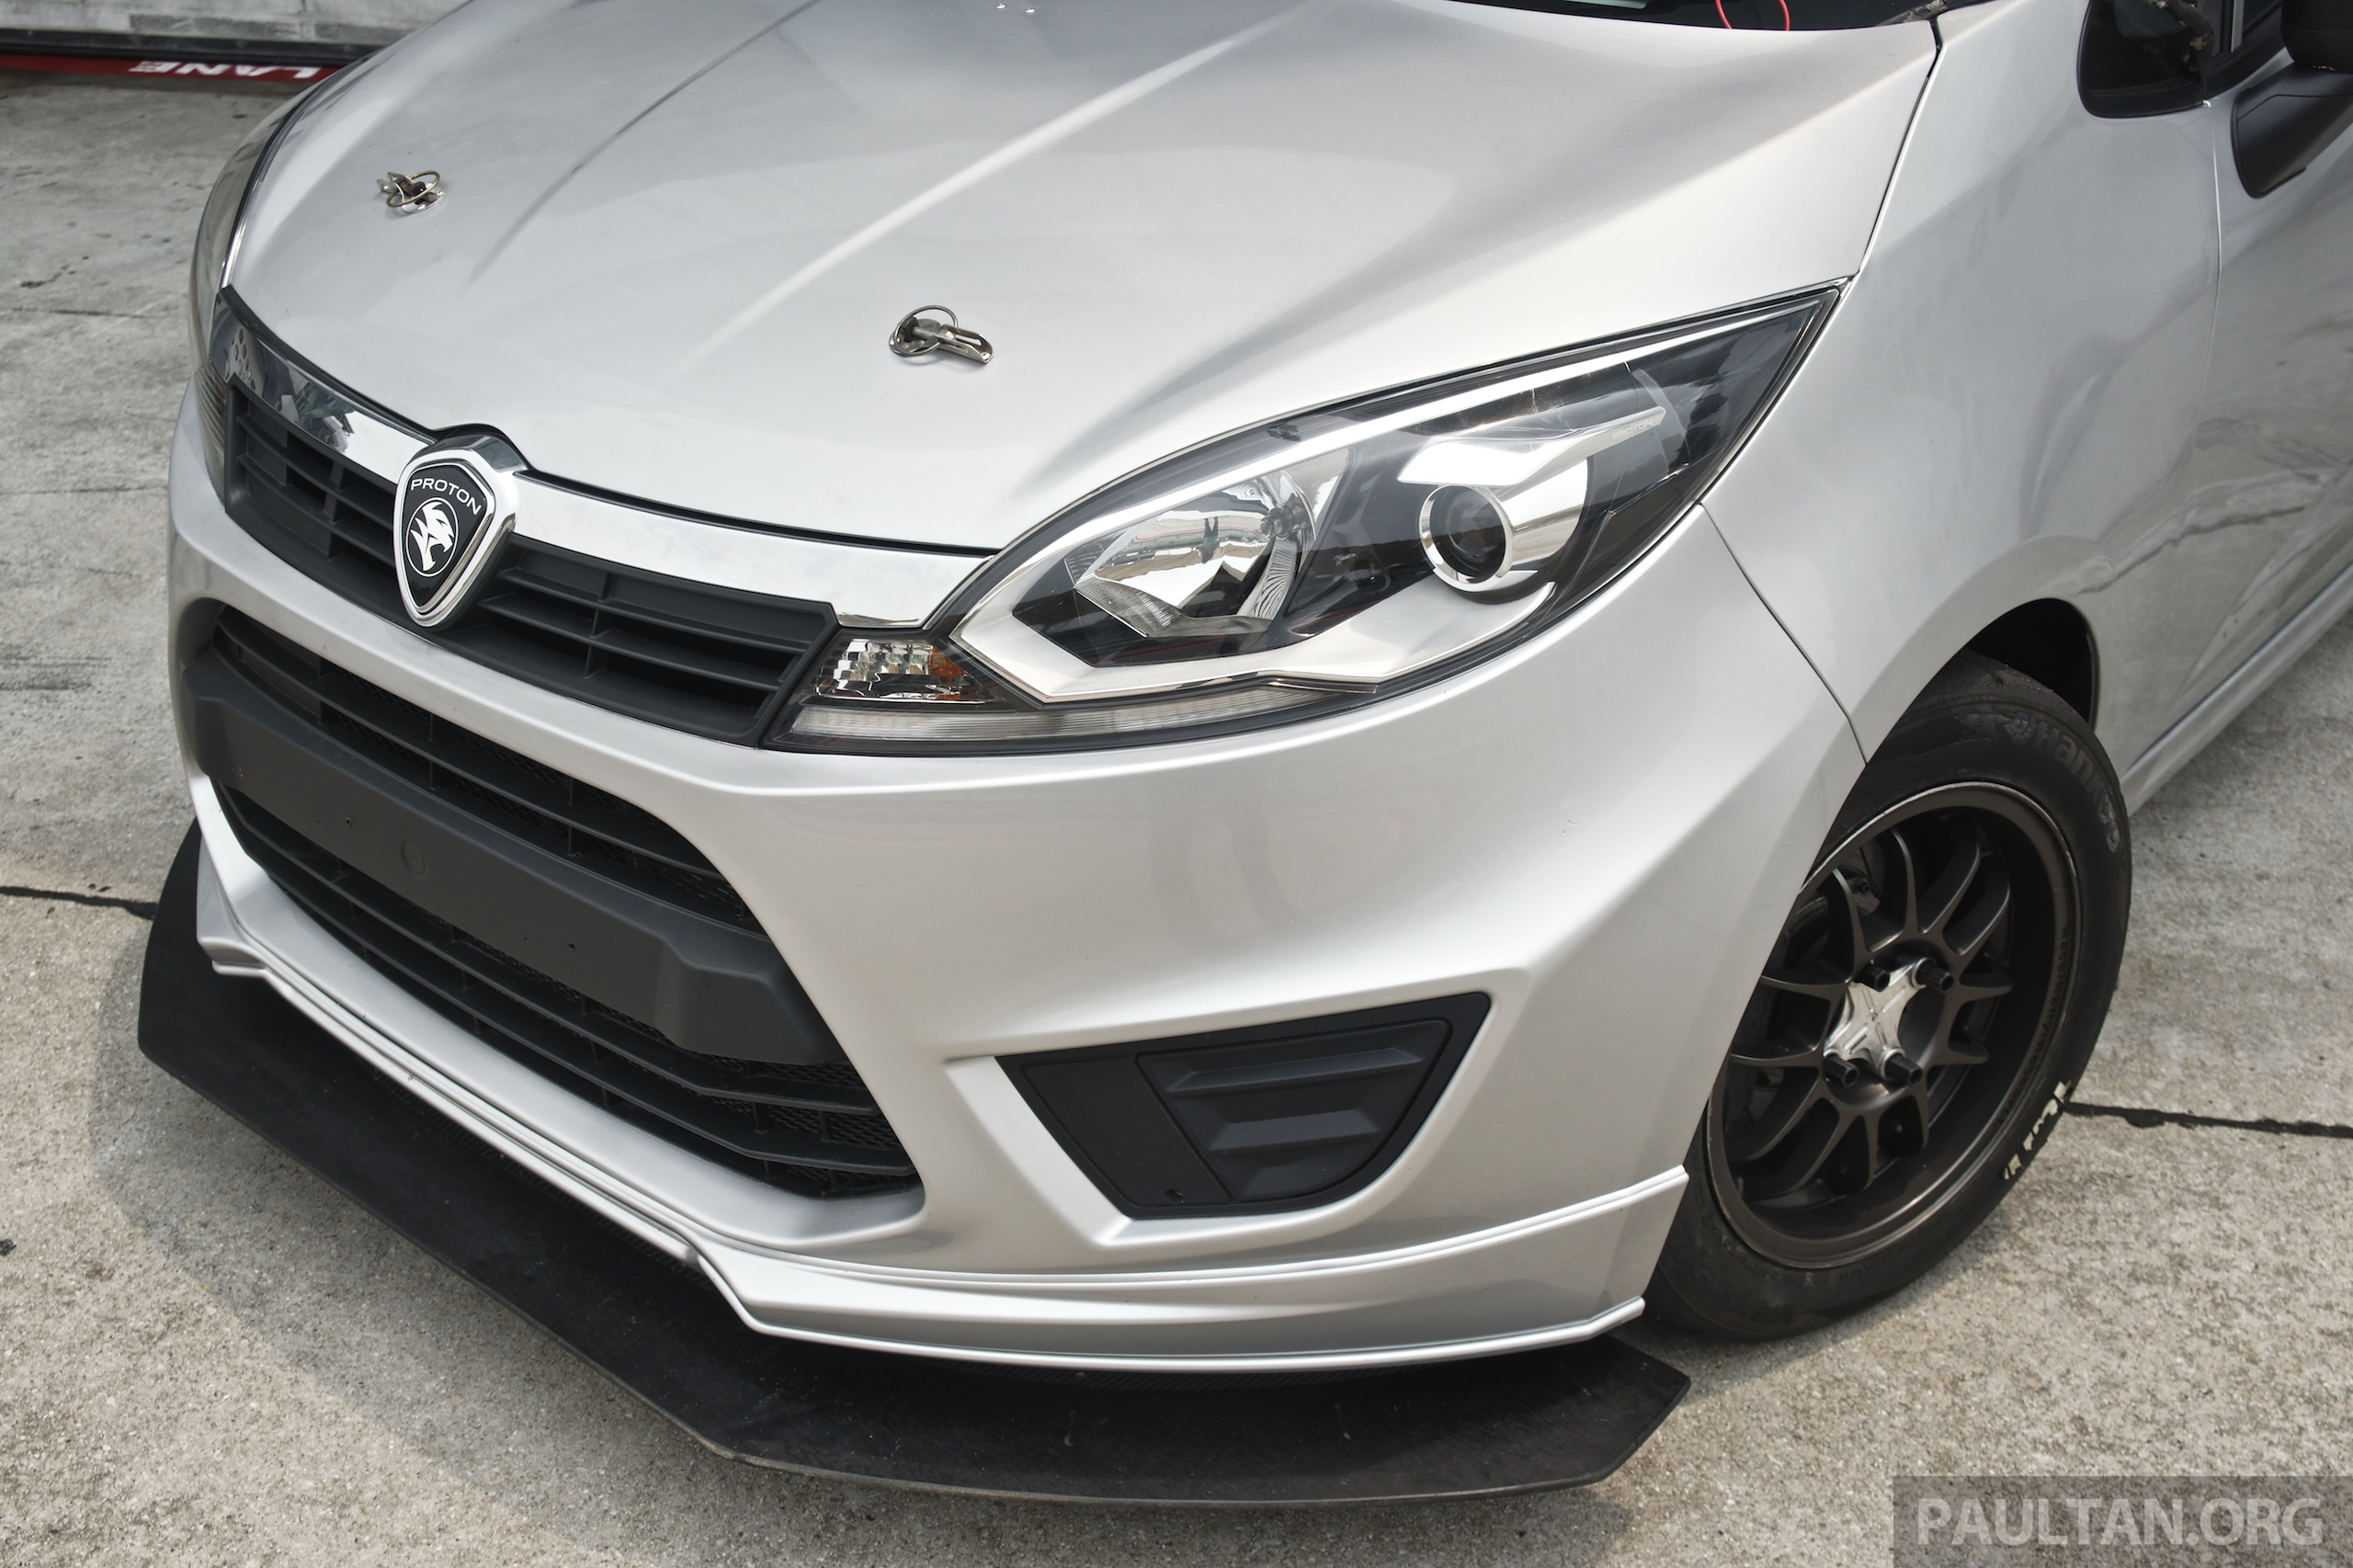 2015 Challenger >> Proton Iriz R3 Malaysian Touring Car – first look at the new Malaysia Championship Series ...